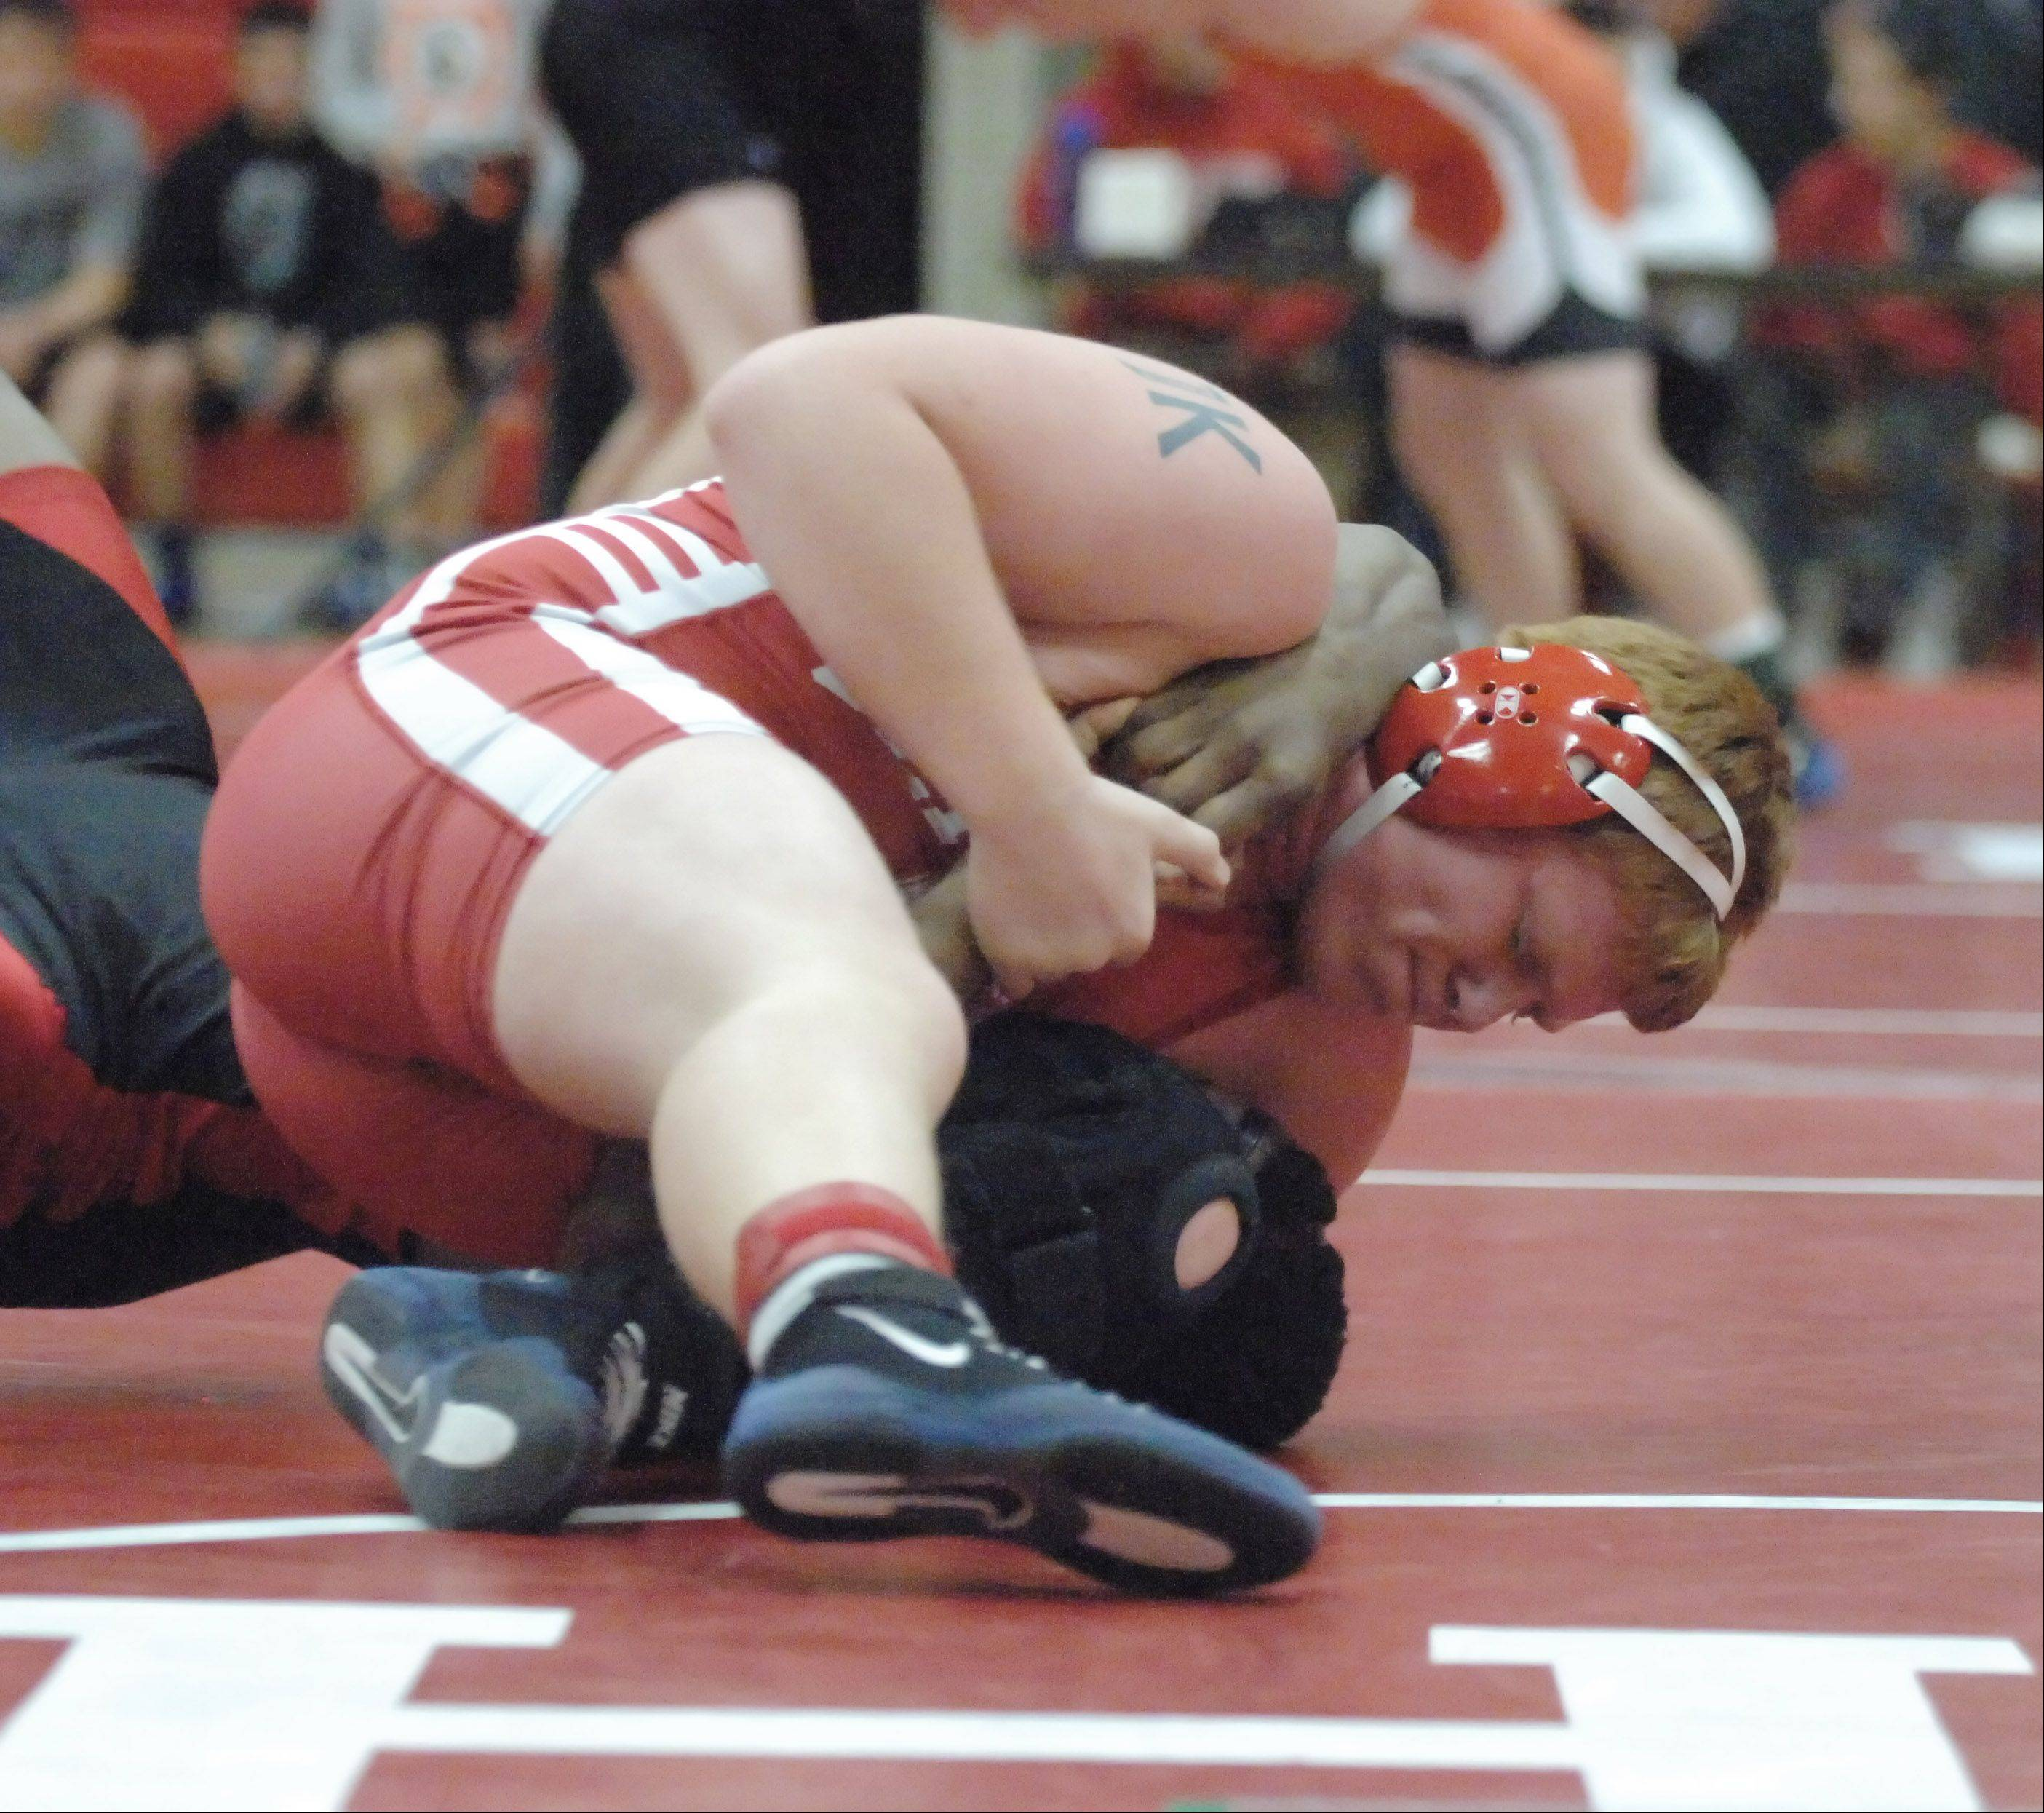 Paul Michna/pmichna@dailyherald.comJustin Tardy of Naperville Central,top, and Taben Miller of Proviso West take part in a 182 lbs. match during the Hinsdale Central wrestling invitational Saturday.